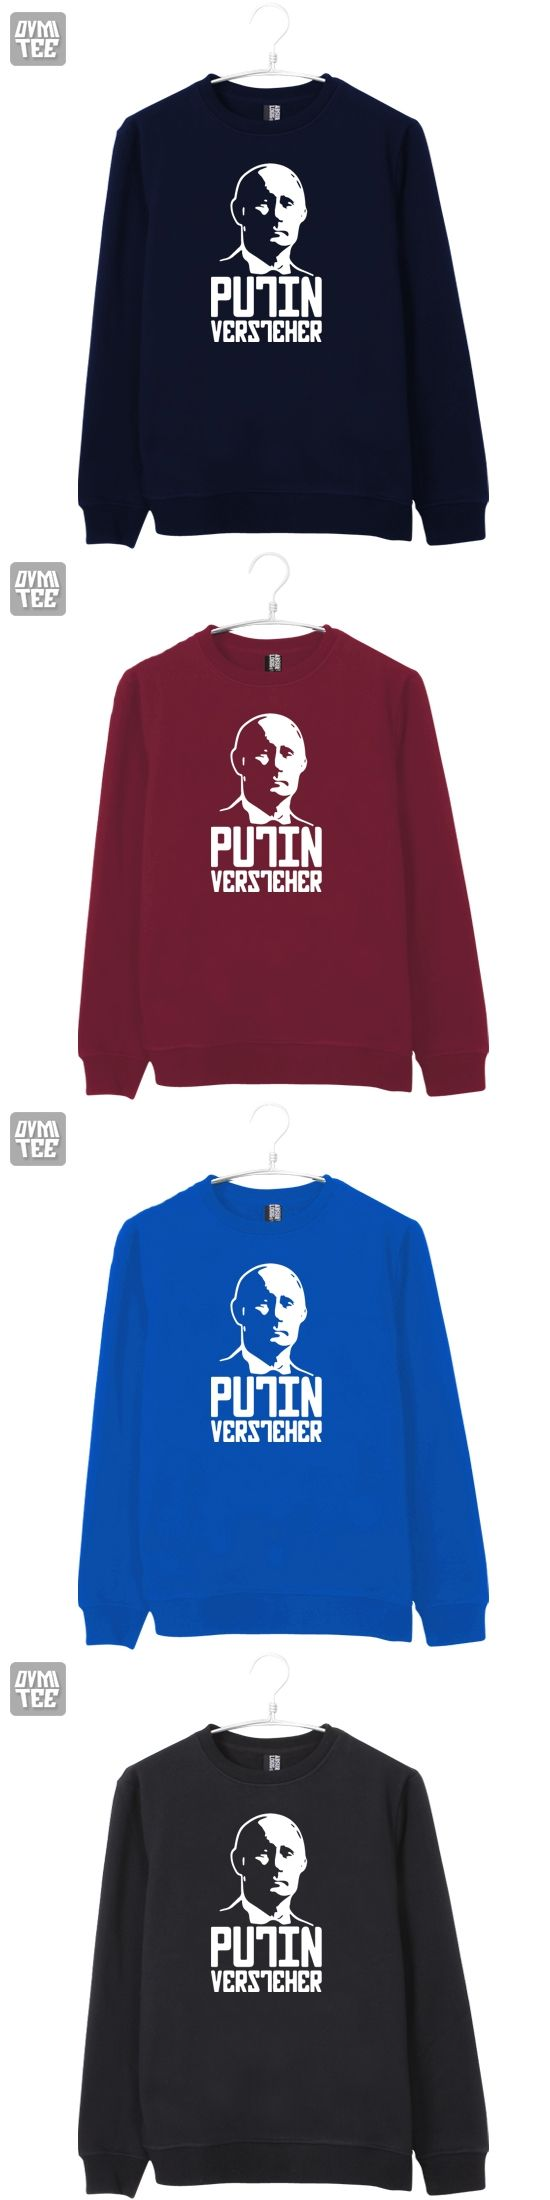 President of Russia Putin Versteher funny homme top sweatshirts thicken pullovers warm clothes men women winter freeshipping